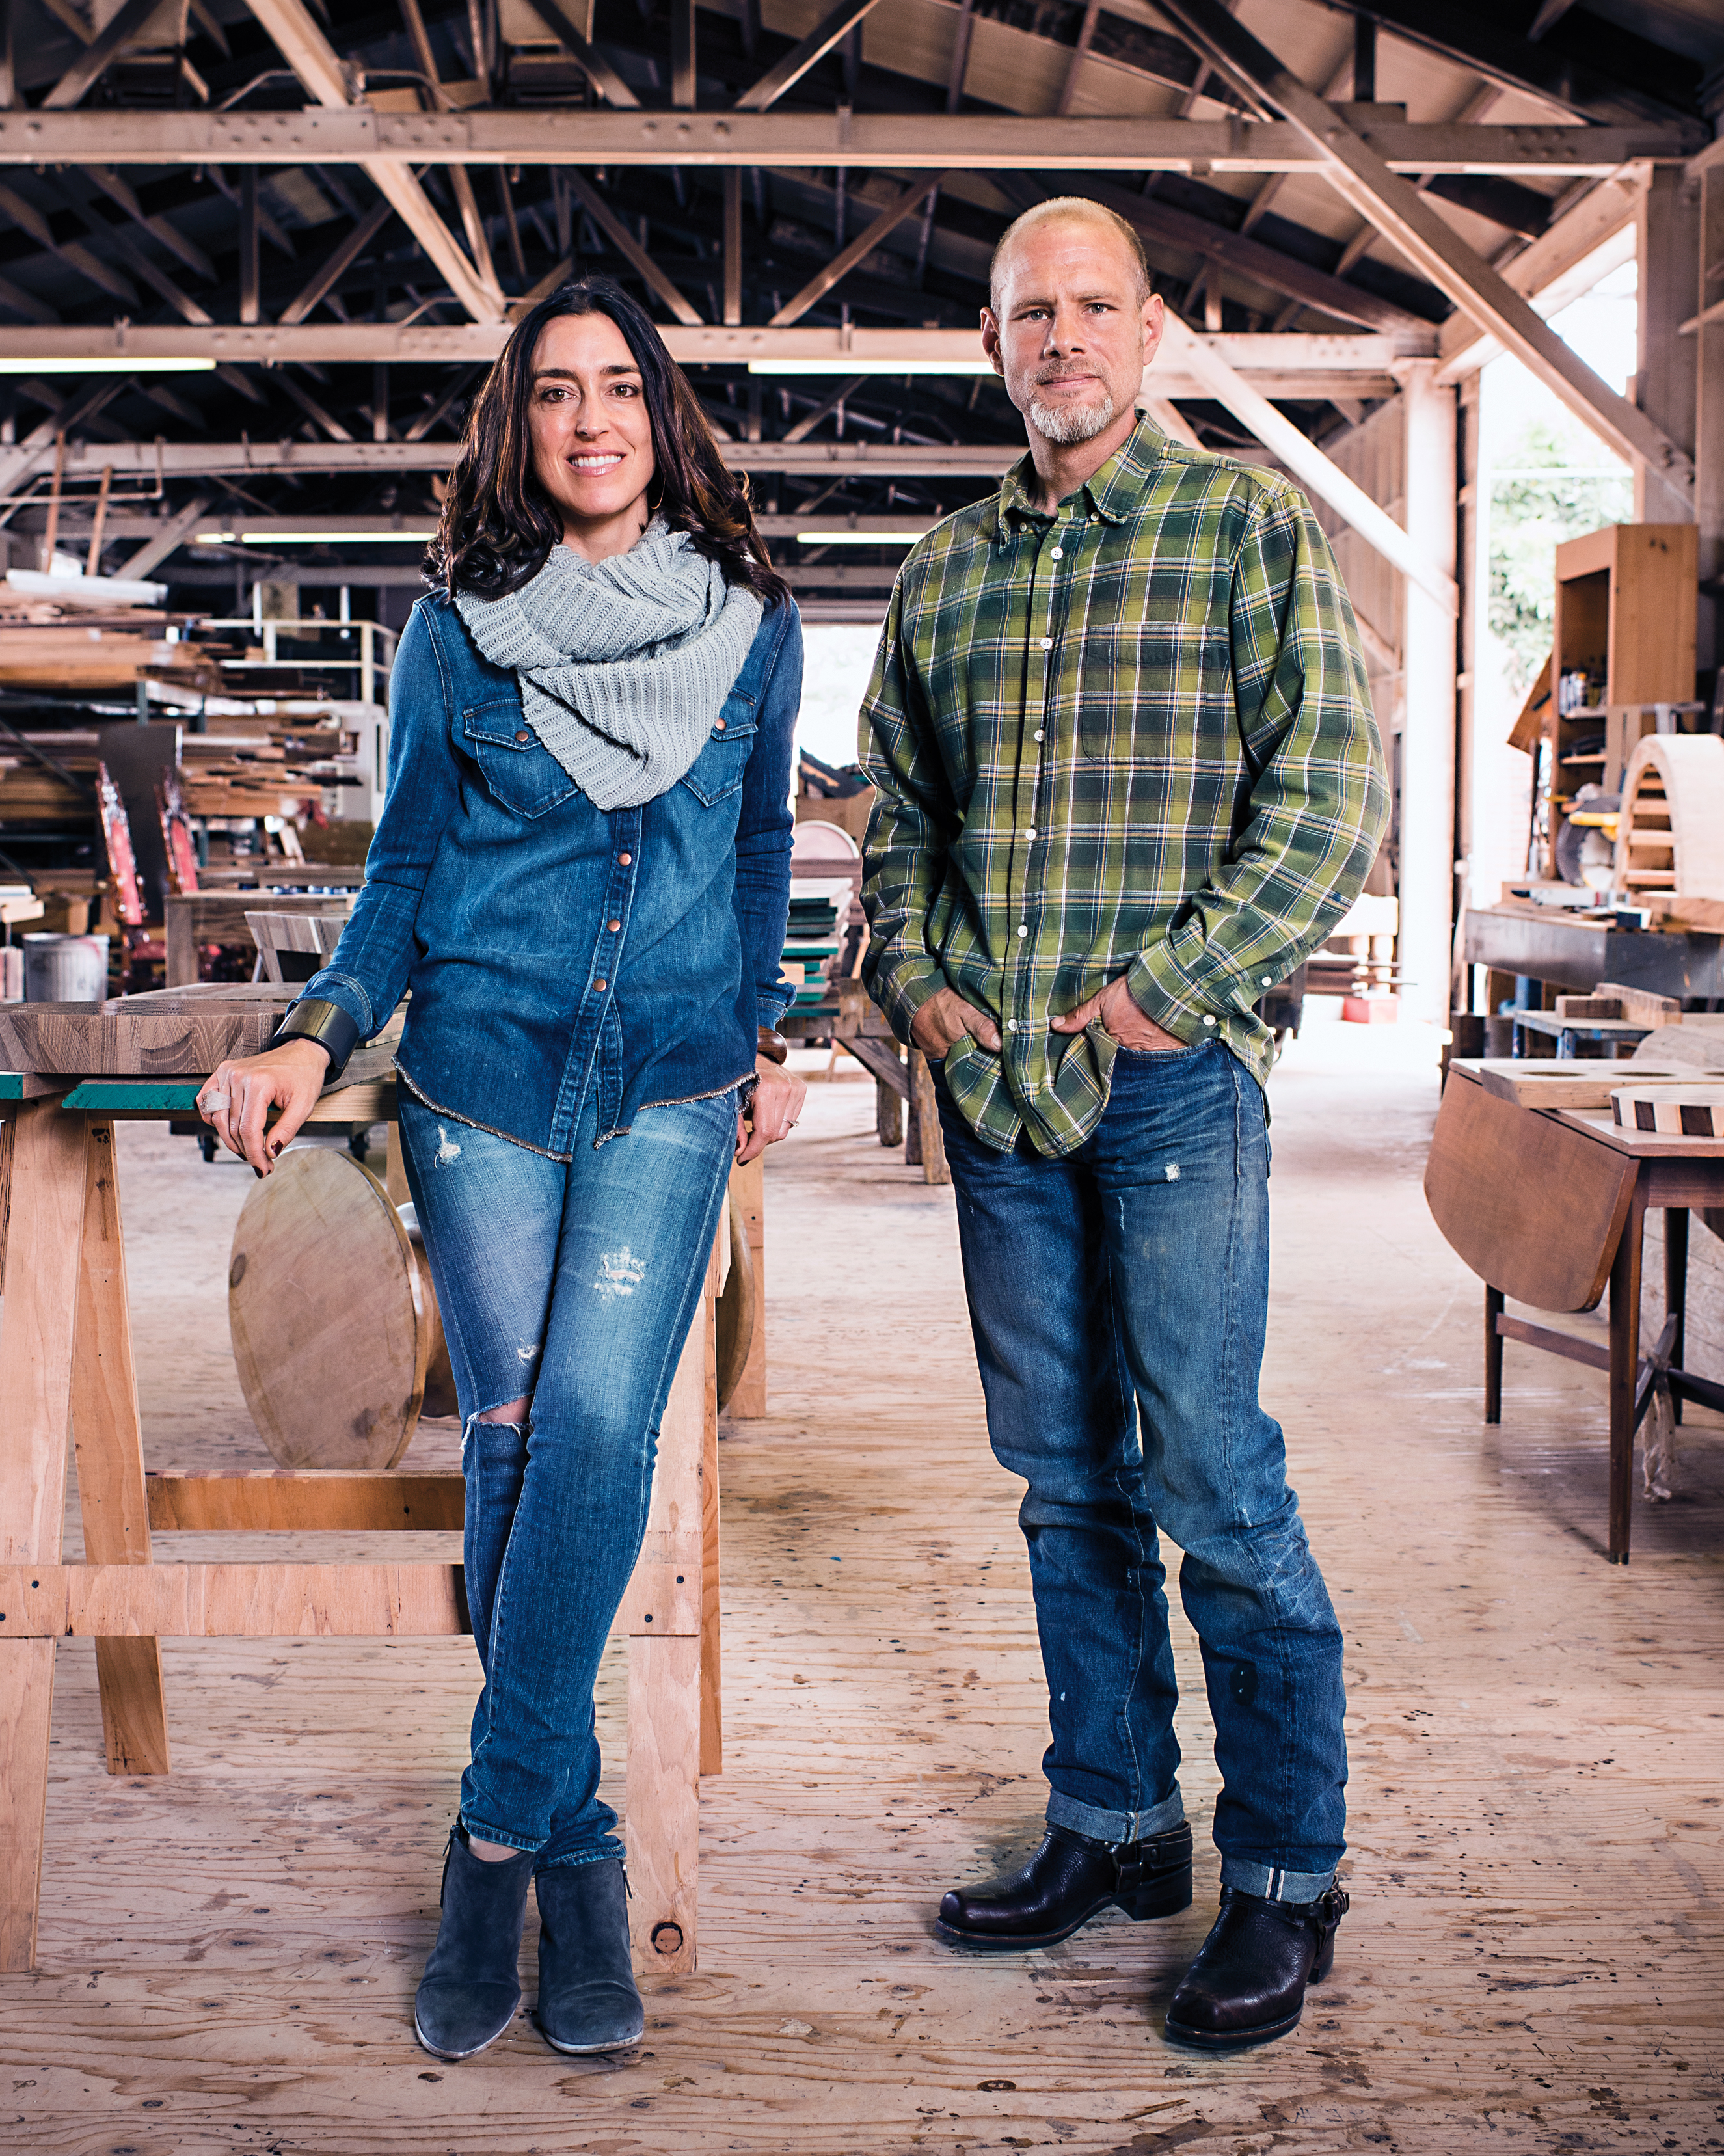 A Woodworking Couple's Labor of Love